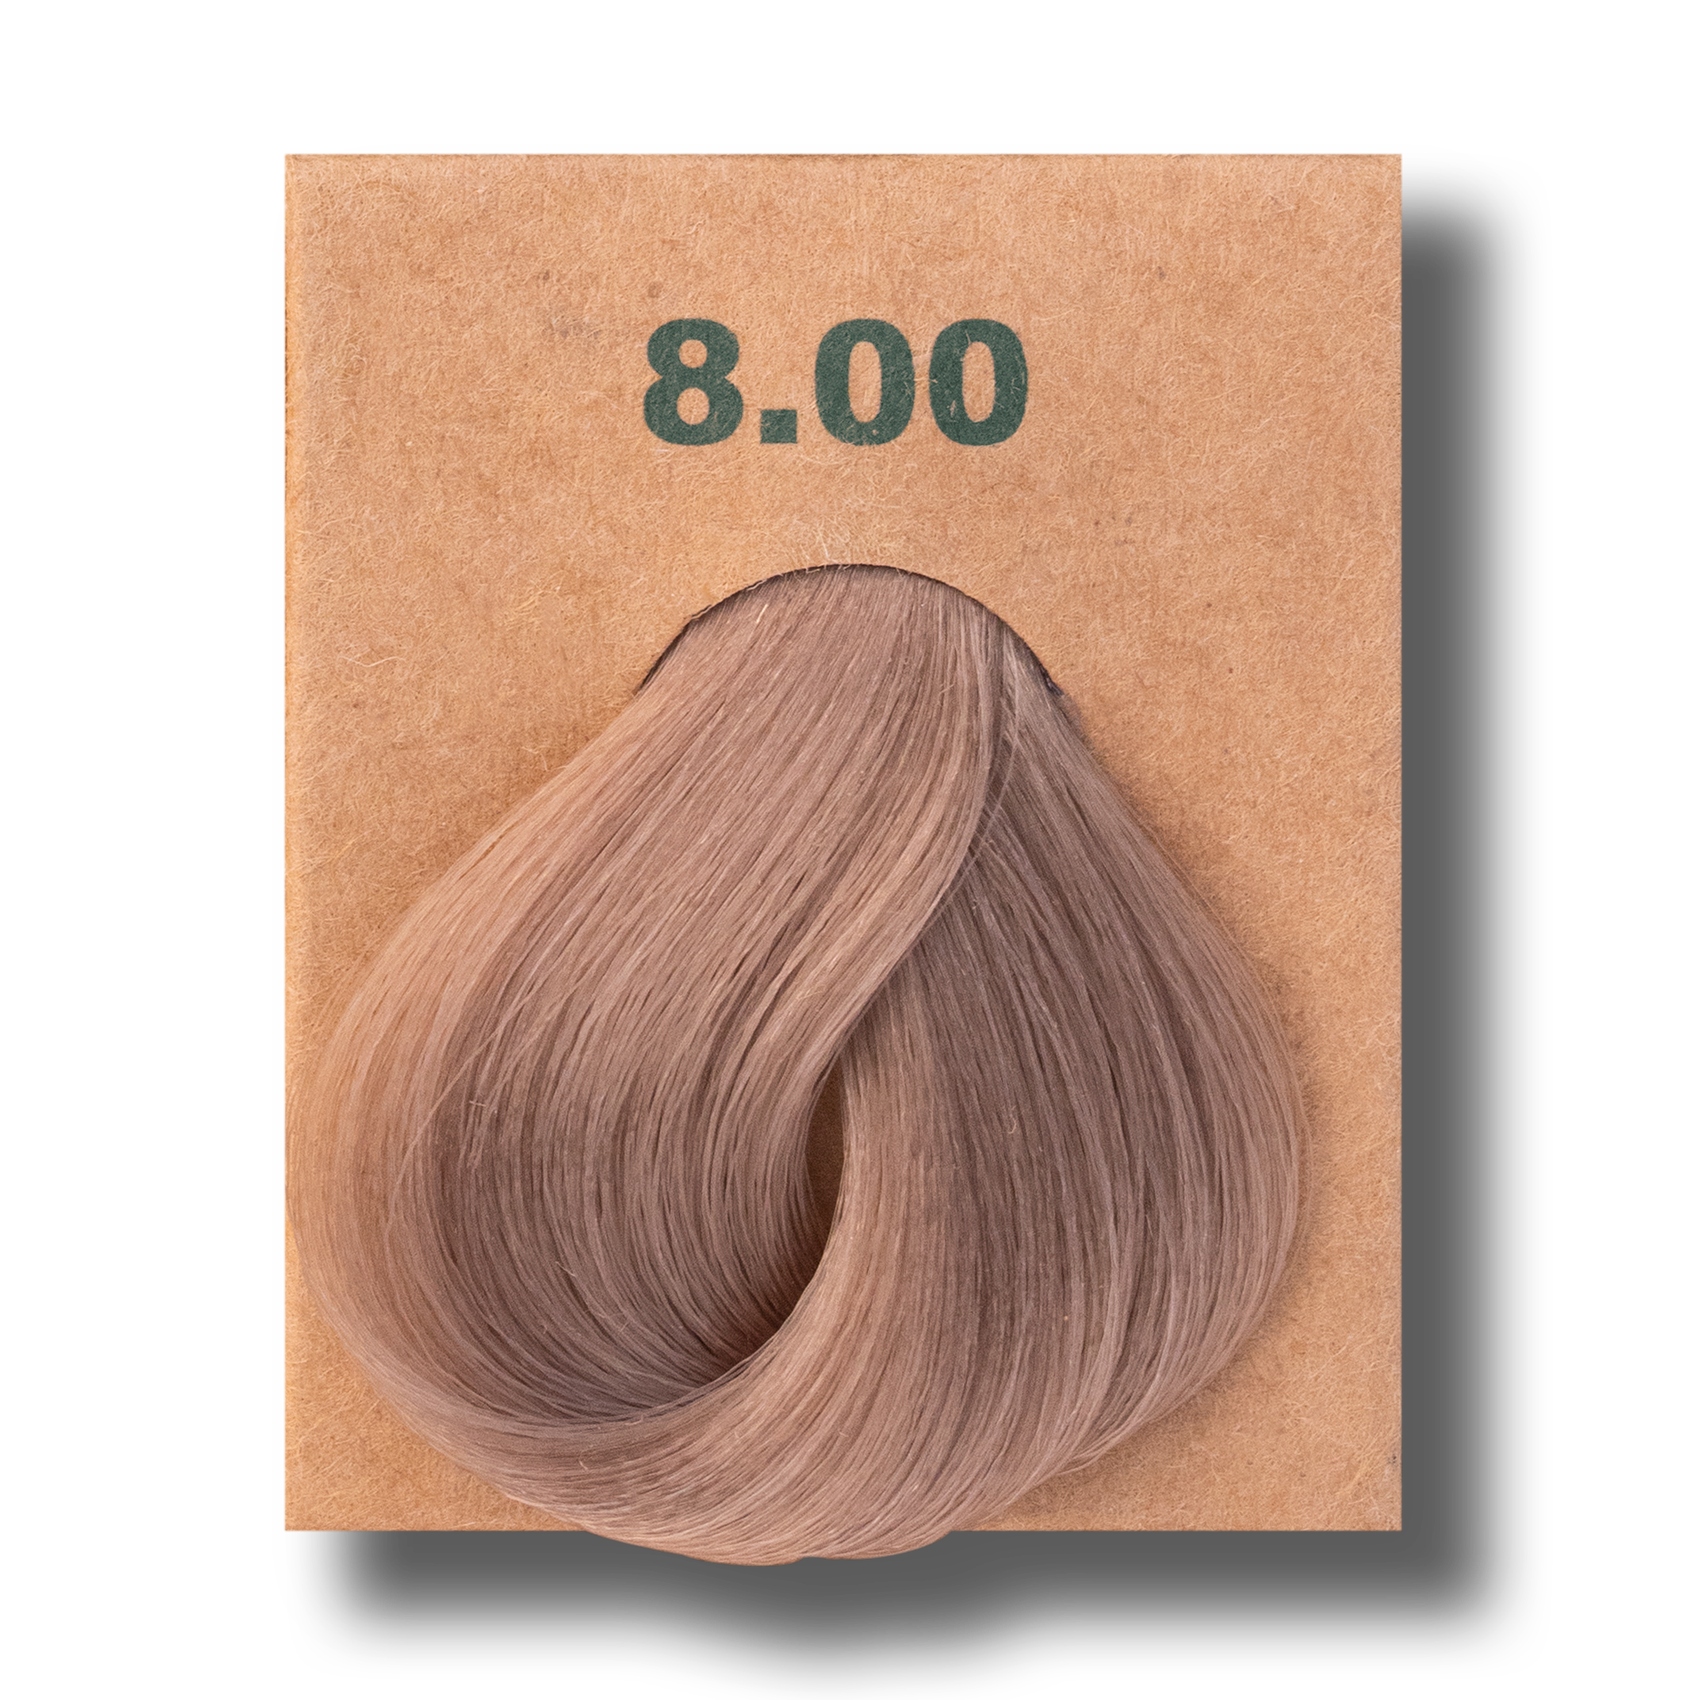 Vopsea de par  fara amoniac BioMagic 8.00  Light Blonde